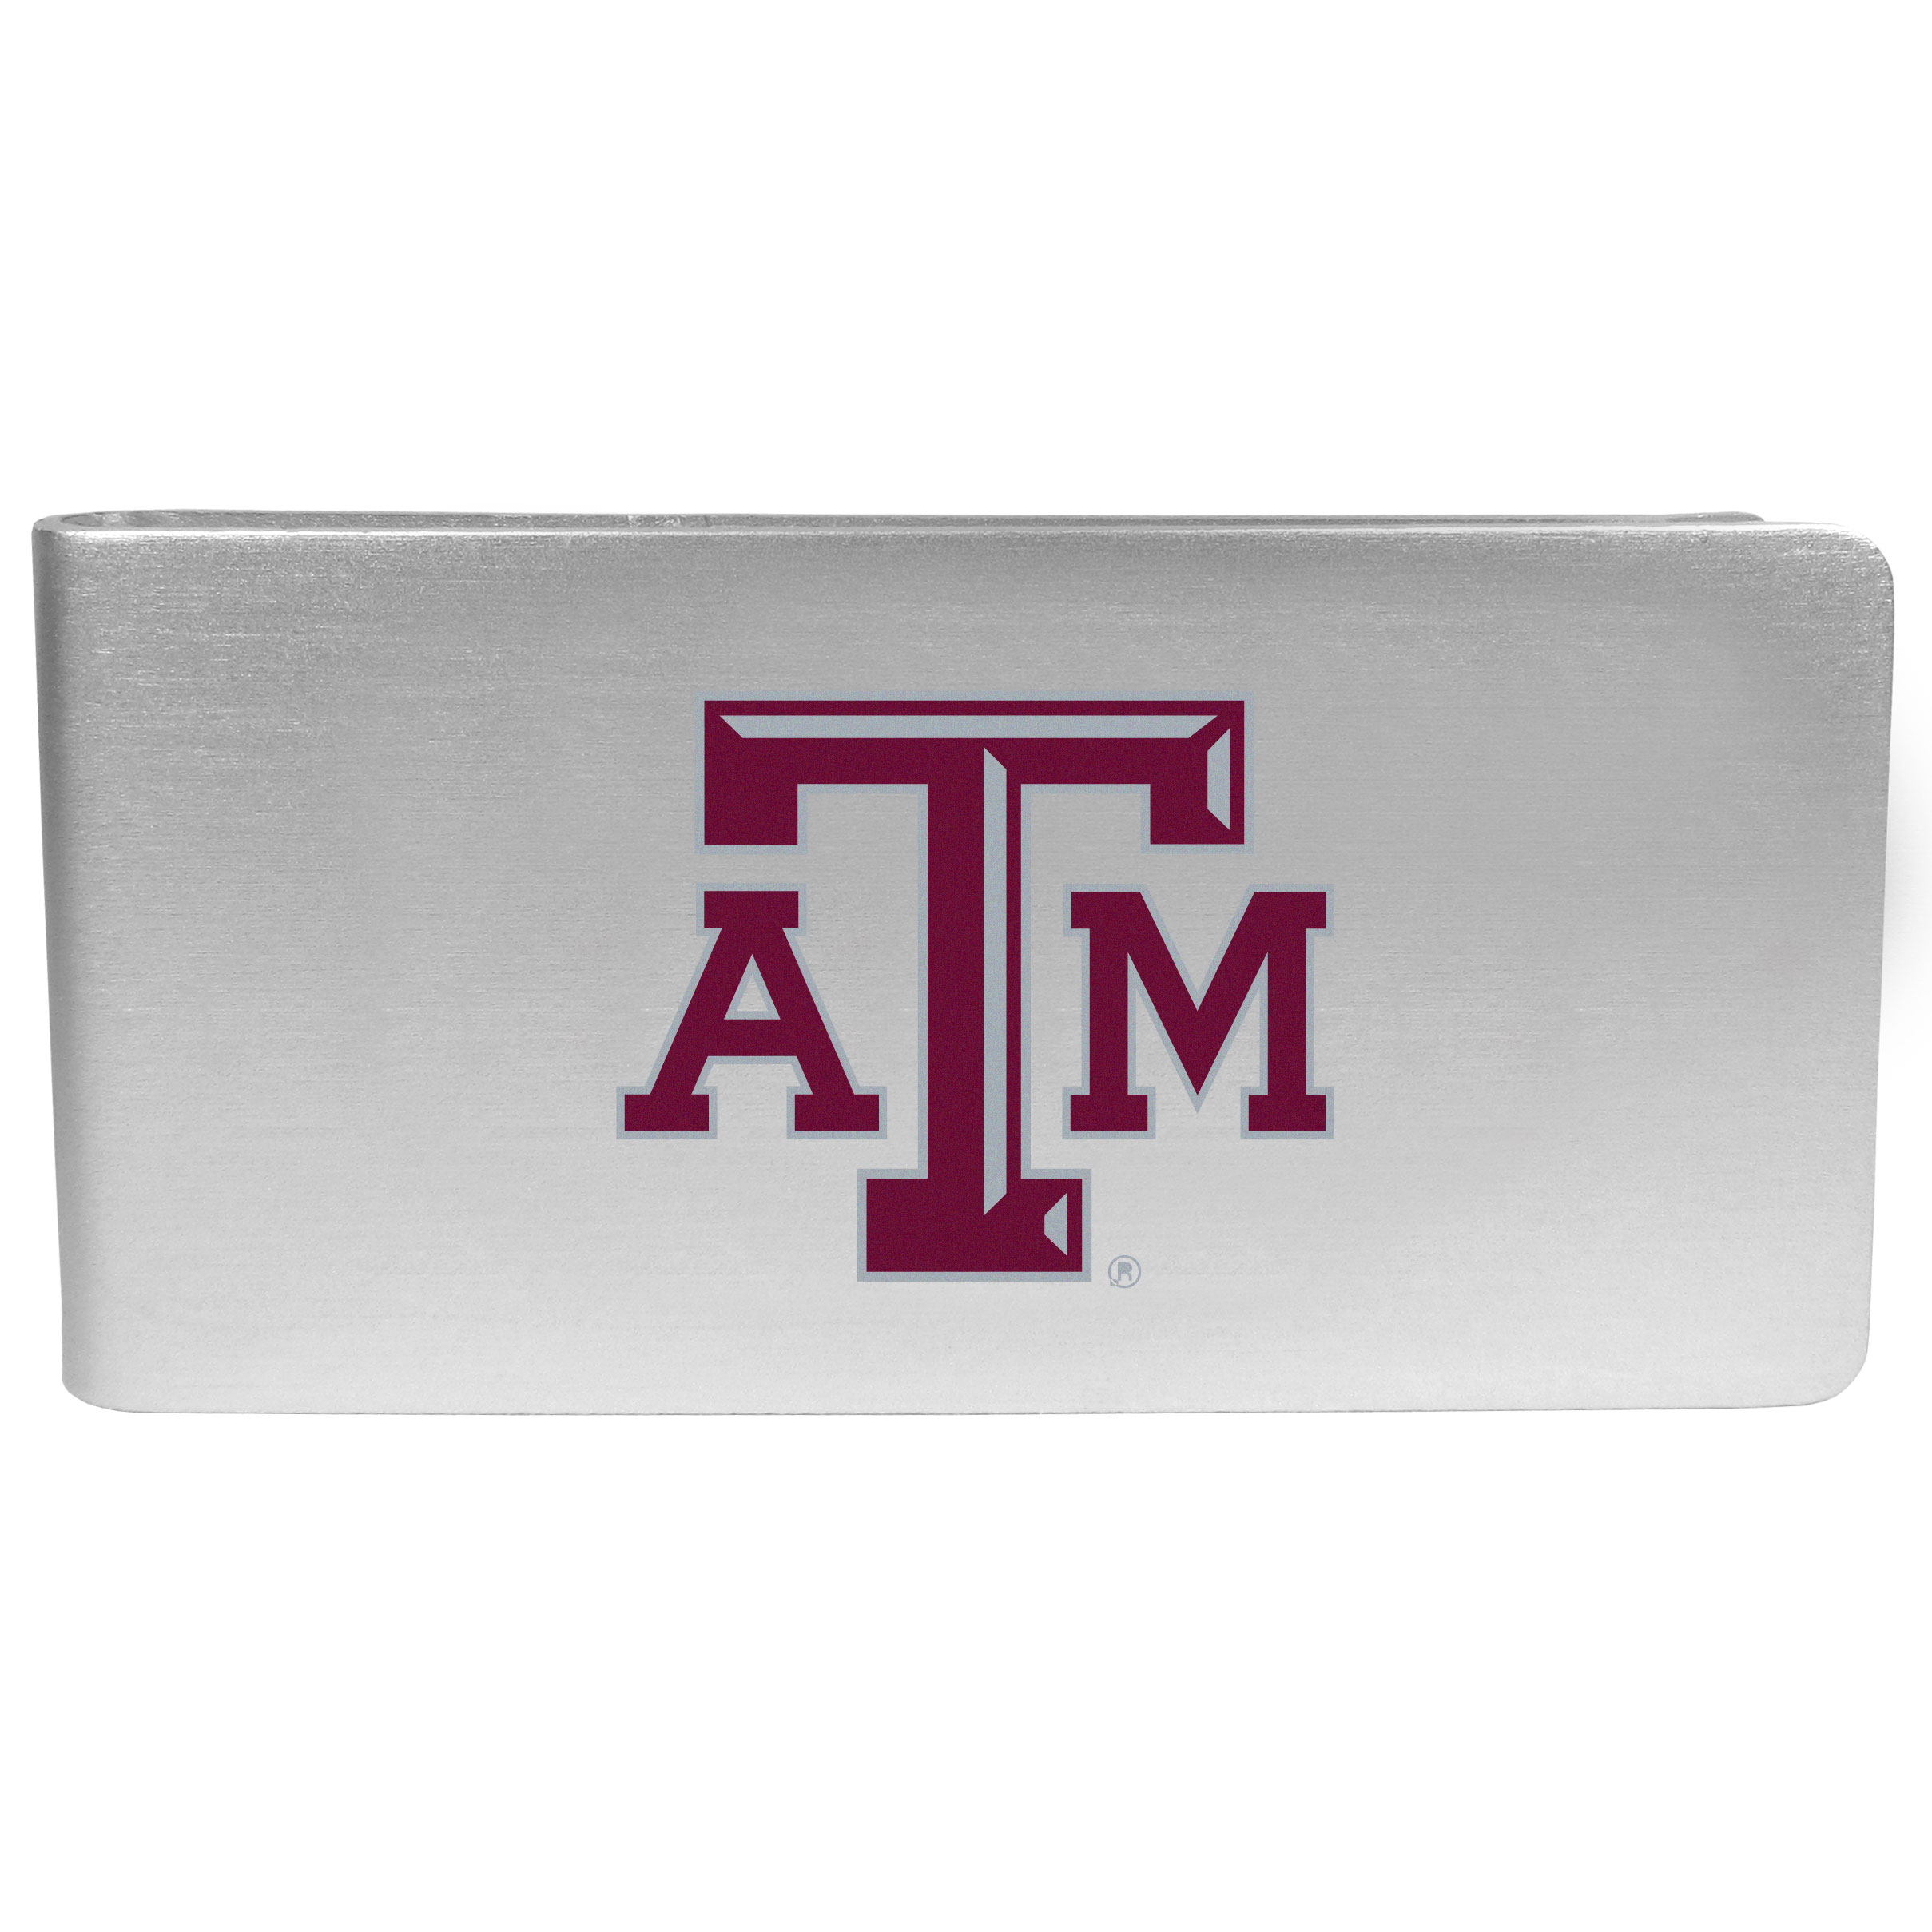 Texas A and M Aggies Logo Money Clip - Our brushed metal money clip has classic style and functionality. The attractive clip features the Texas A & M Aggies logo expertly printed on front.